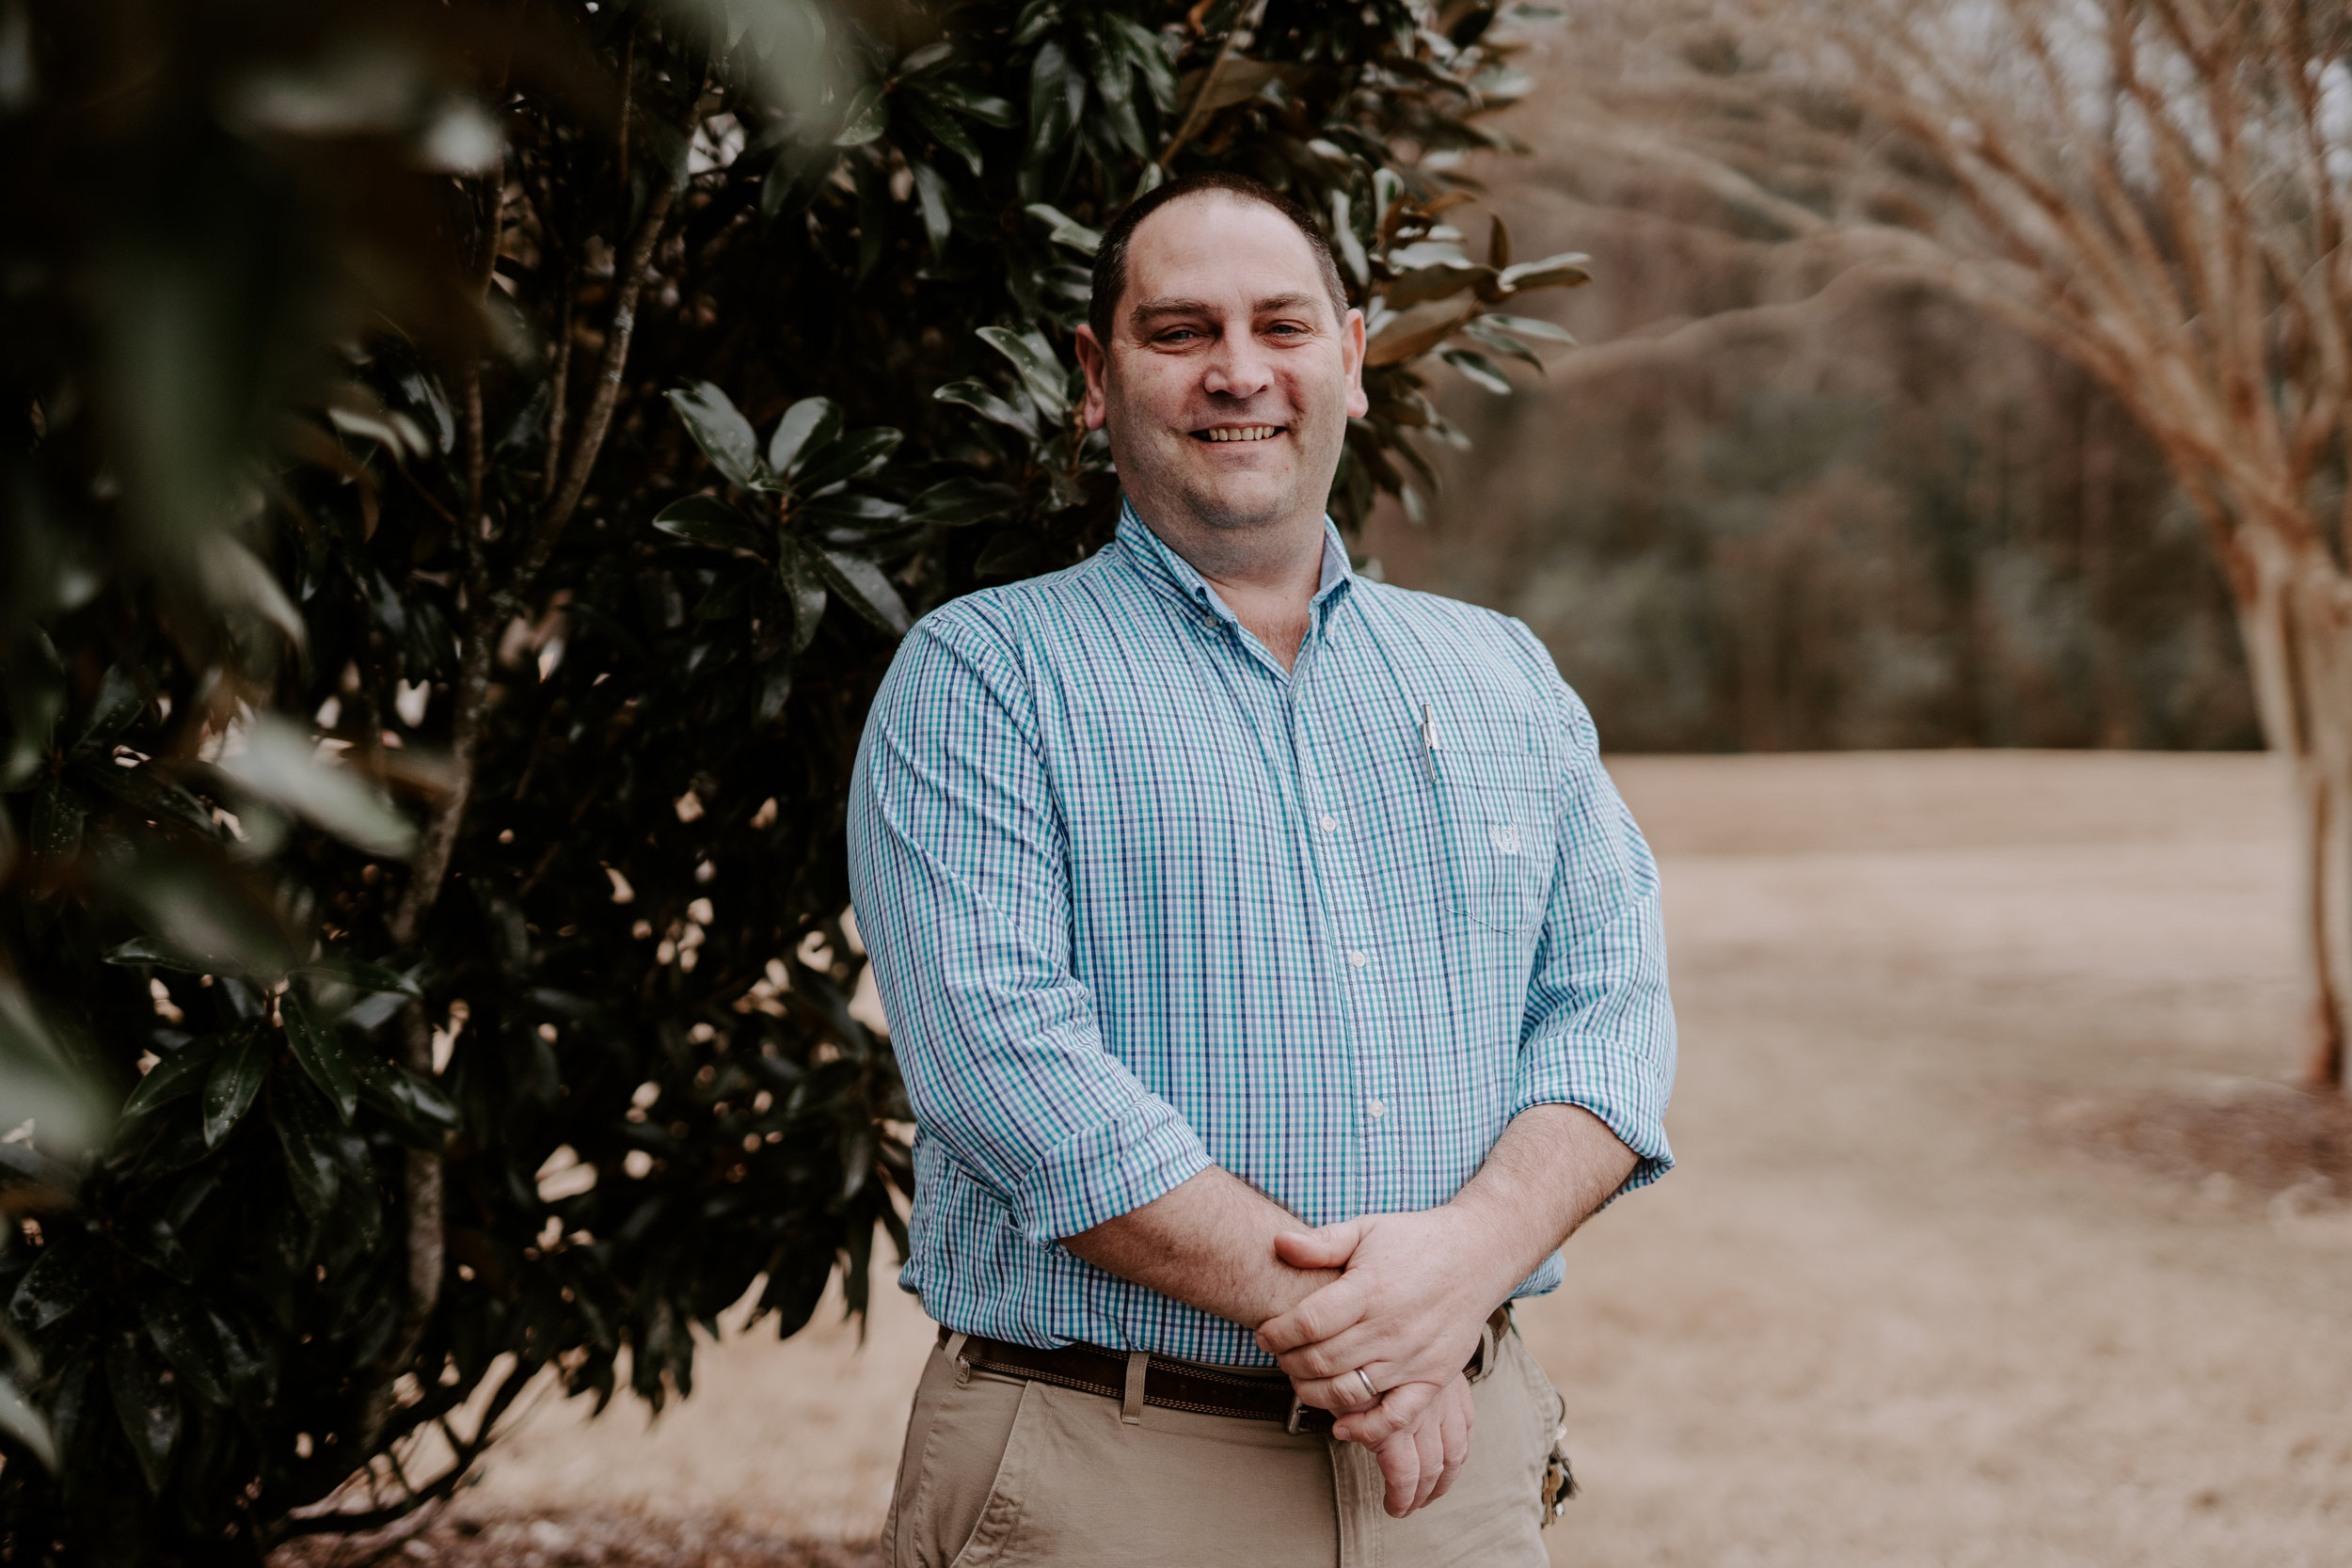 Franklin Baxter, Building superintendent - Franklin maintains the buildings function by performing routine maintenance to systems as necessary while continually keeping them at top working condition in order to provide an ideal worship experience for members and guests.franklin@cornerstonebuzz.org